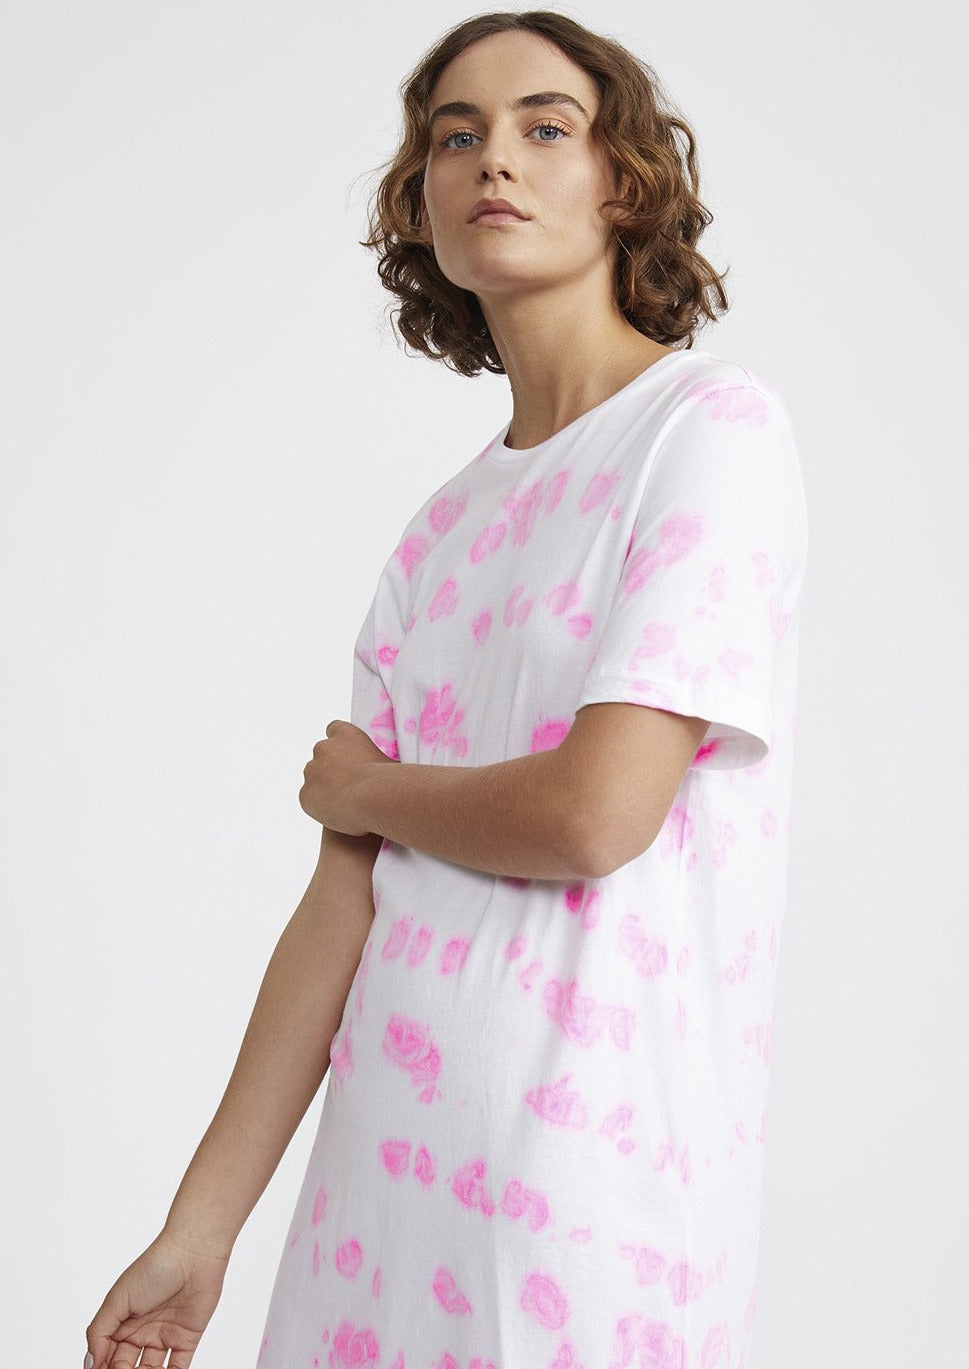 The Ruby Tee Dress in neon pink tie dye is crafted from 100% premium organic cotton jersey and features a rounded neckline, classic straight hem and regular t-shirt fit.